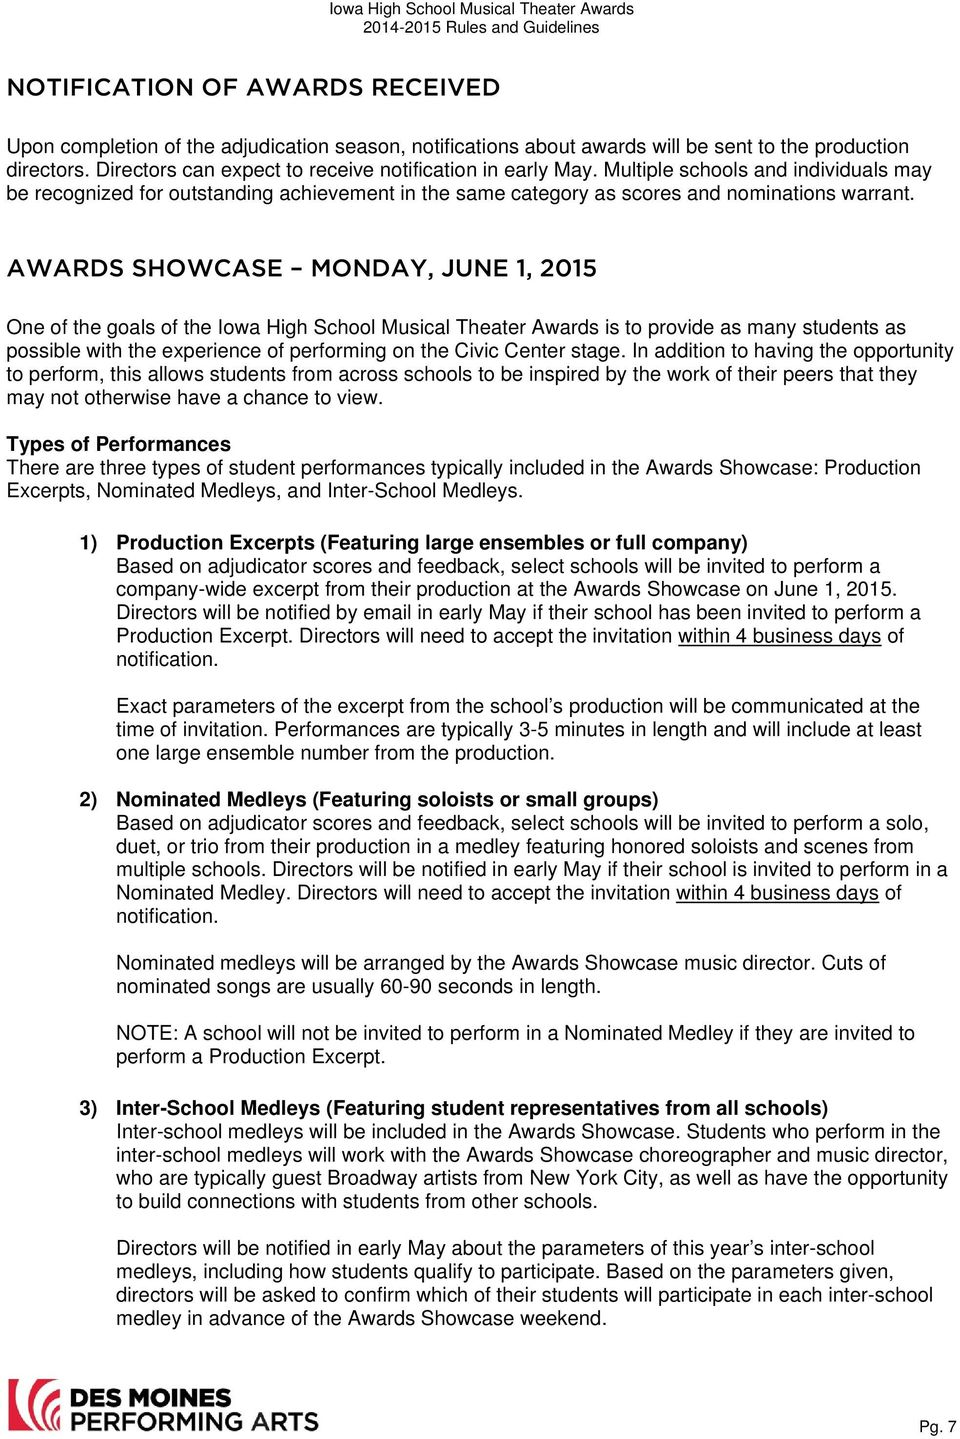 AWARDS SHOWCASE MONDAY, JUNE 1, 2015 One of the goals of the Iowa High School Musical Theater Awards is to provide as many students as possible with the experience of performing on the Civic Center